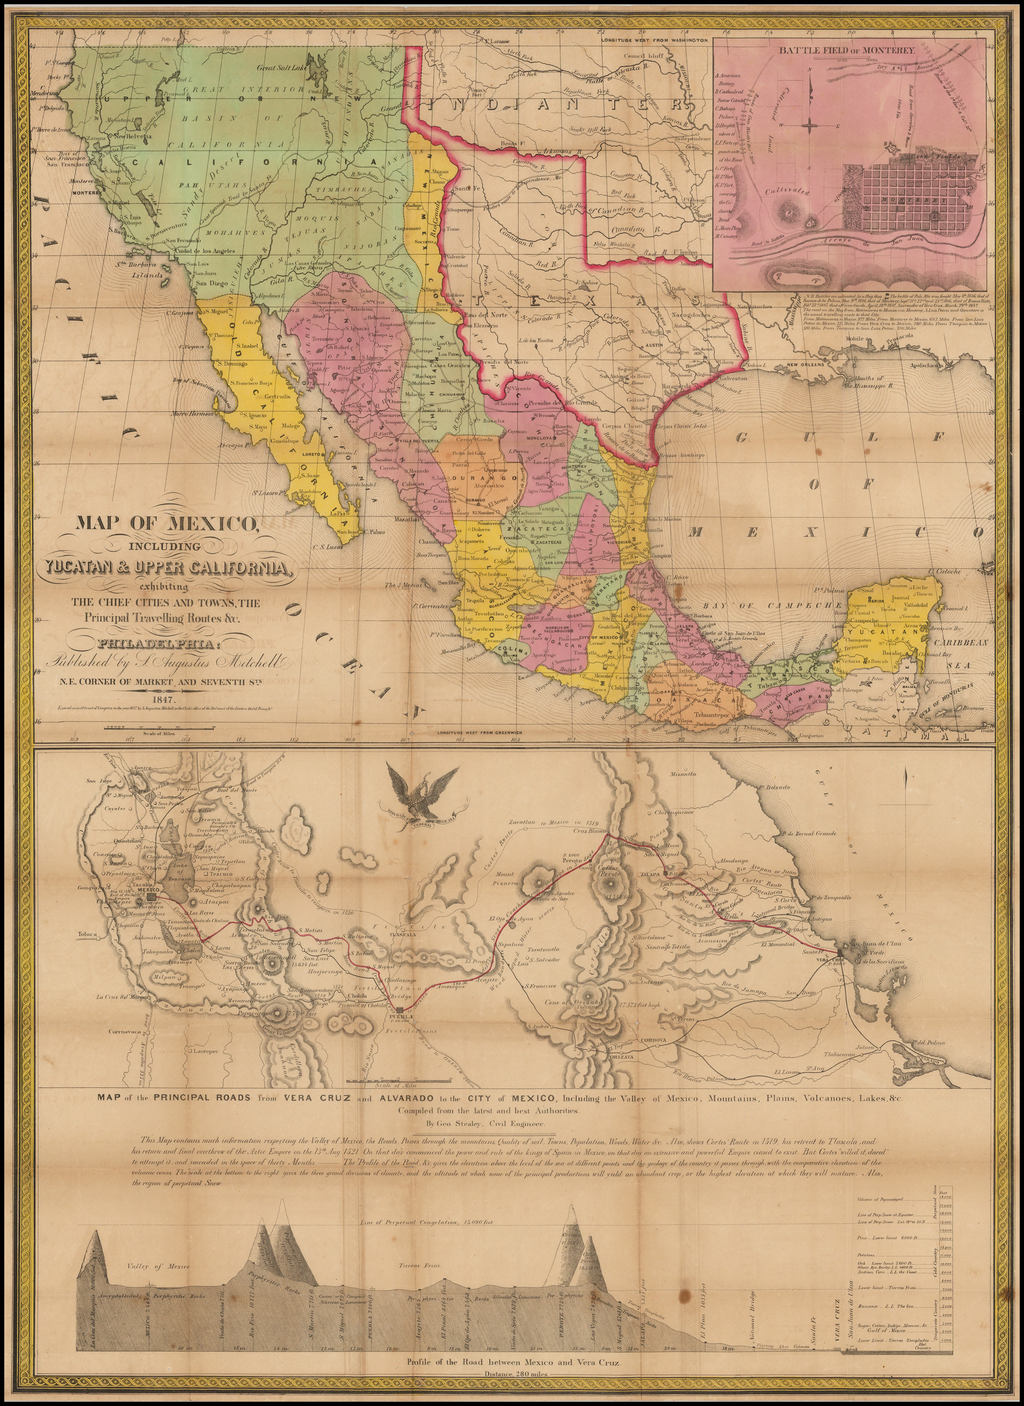 [Early Appearance of Dallas!] . Map of Mexico, Including Yucatan & Upper California, exhibiting The Chief Cities And Towns, The Principal Travelling Routes &c . . . 1847 By Samuel Augustus Mitchell